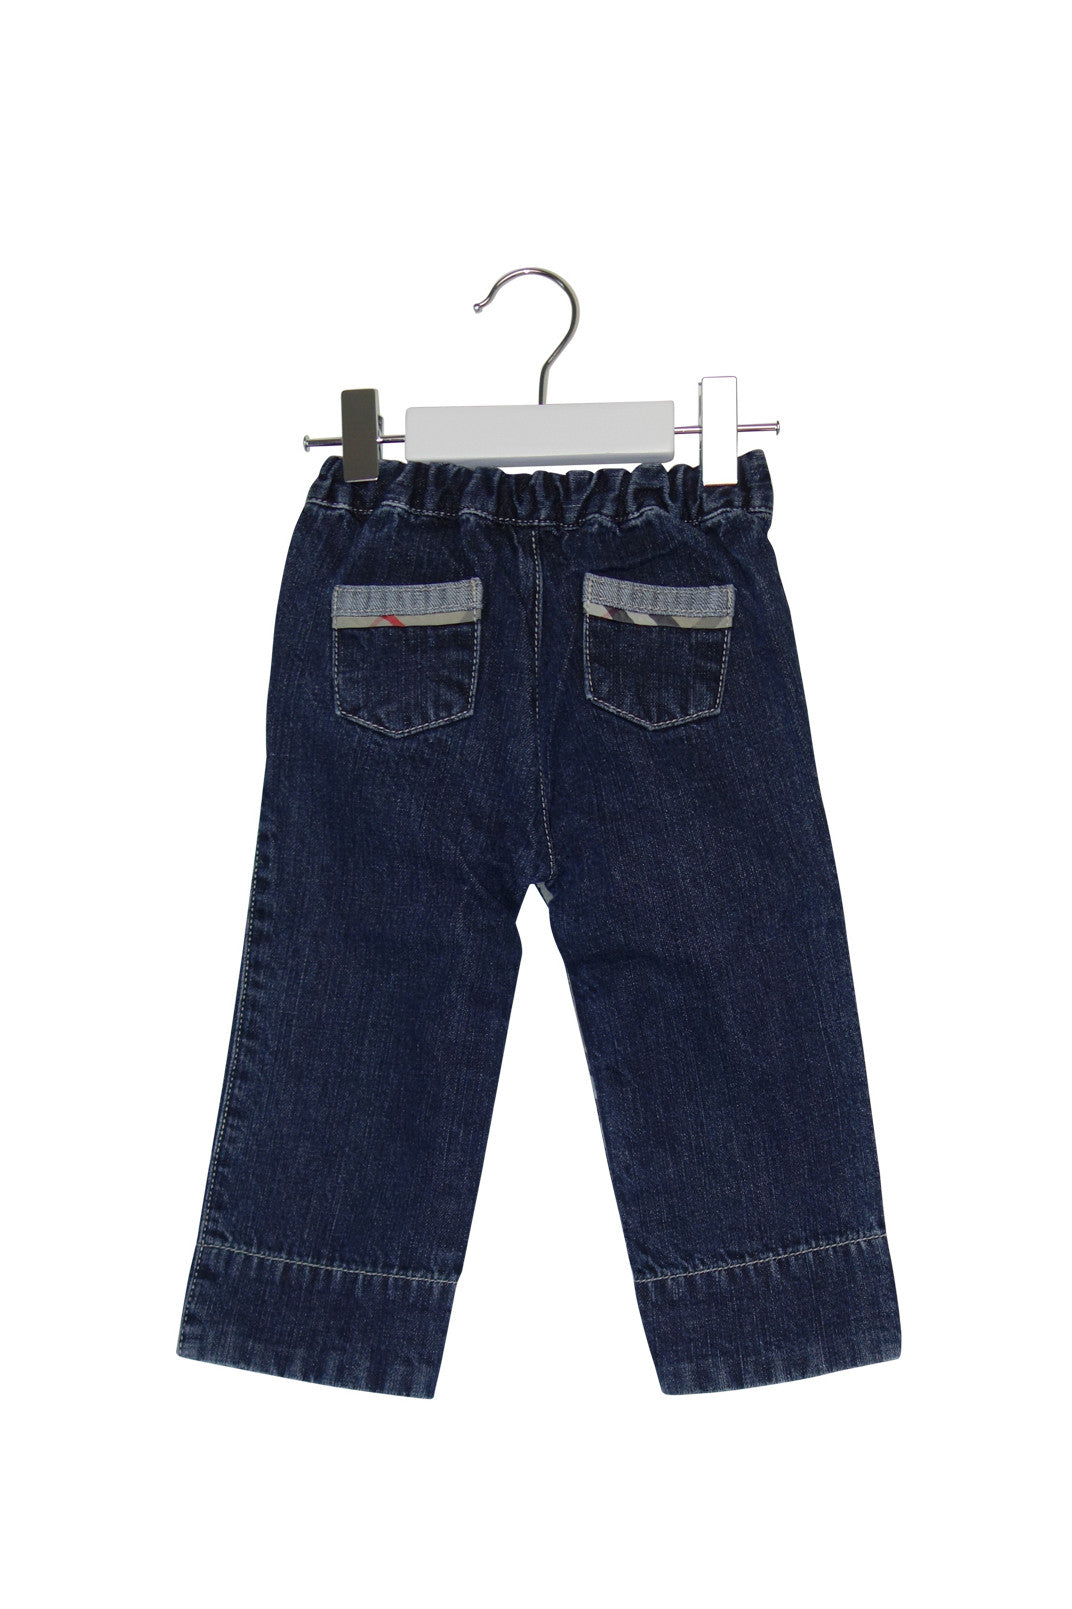 Pants 12M, Burberry at Retykle - Online Baby & Kids Clothing Up to 90% Off